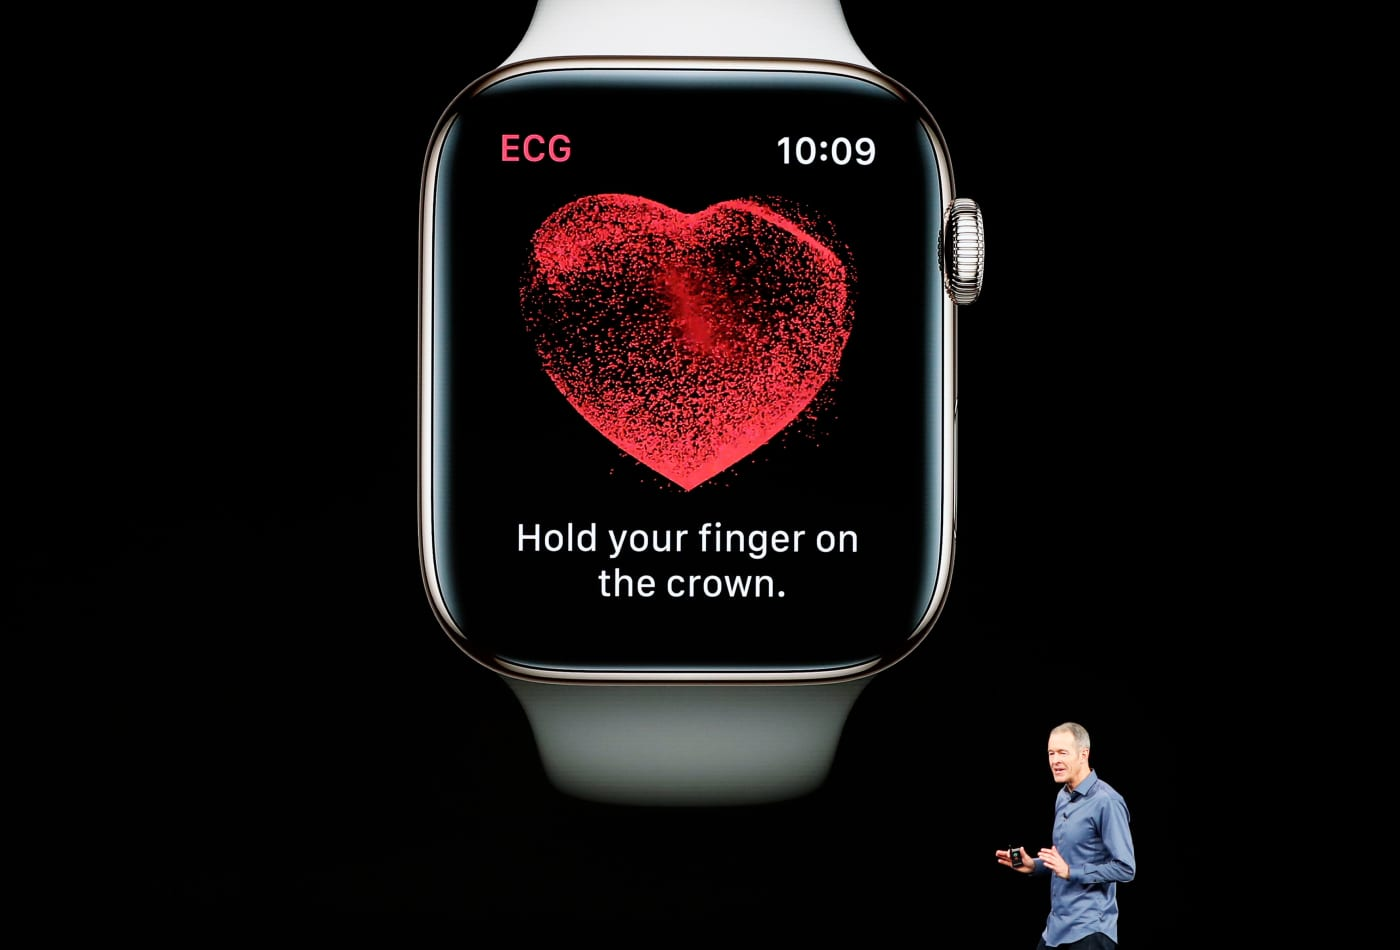 Apple and Johnson & Johnson team up on new study to see if Apple Watch can reduce risk of stroke